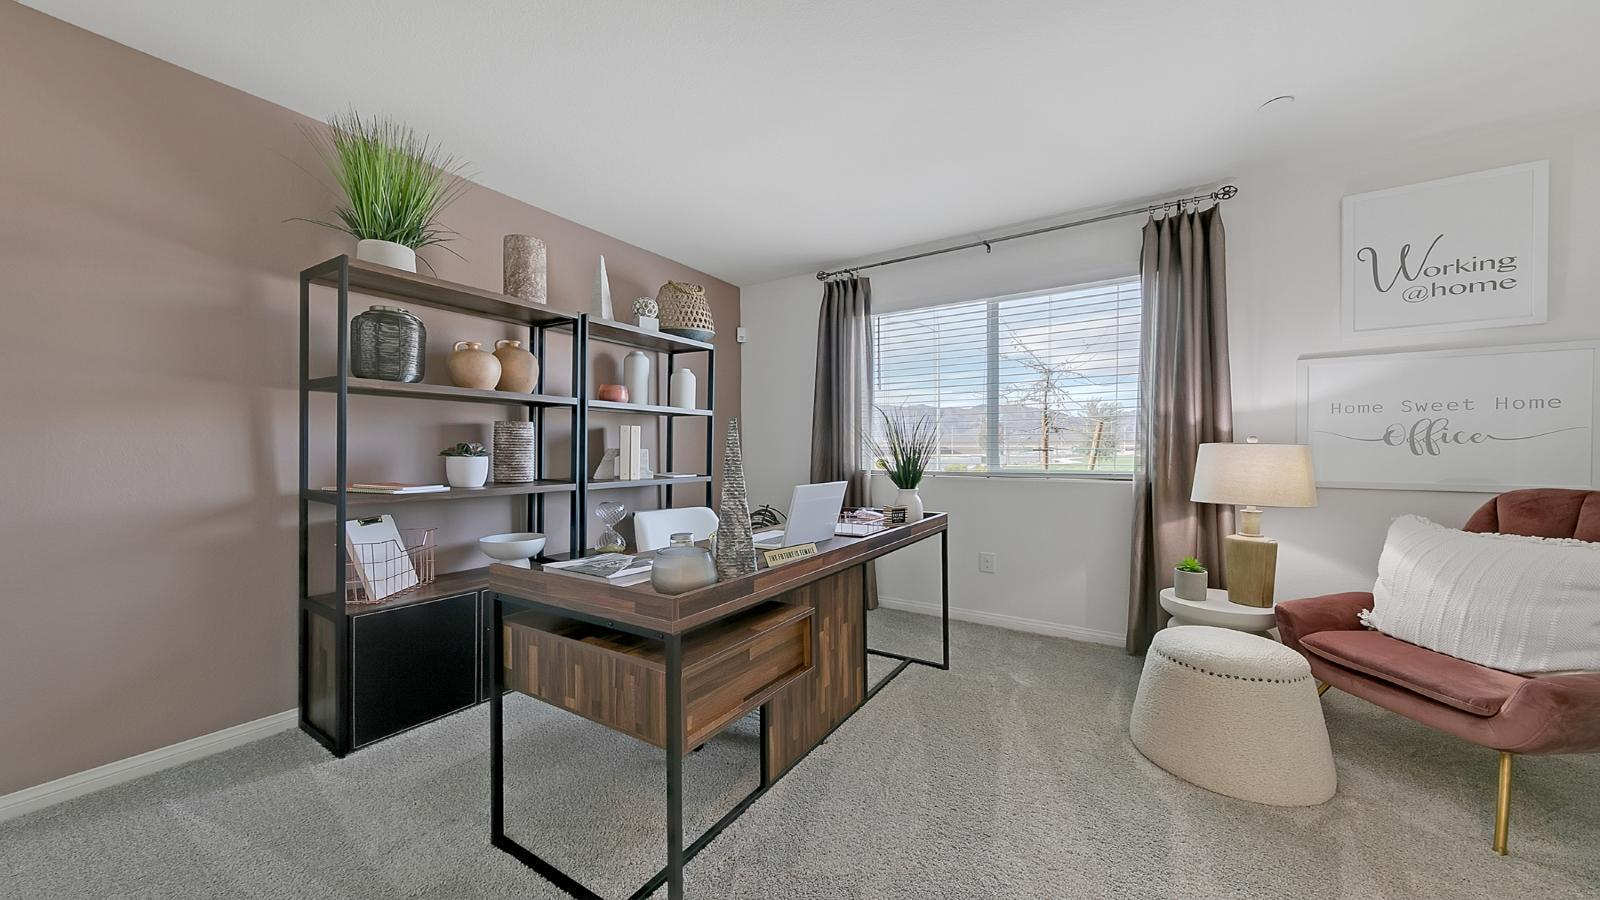 Living Area featured in the Sienna Plan 512 By Touchstone Living in Las Vegas, NV